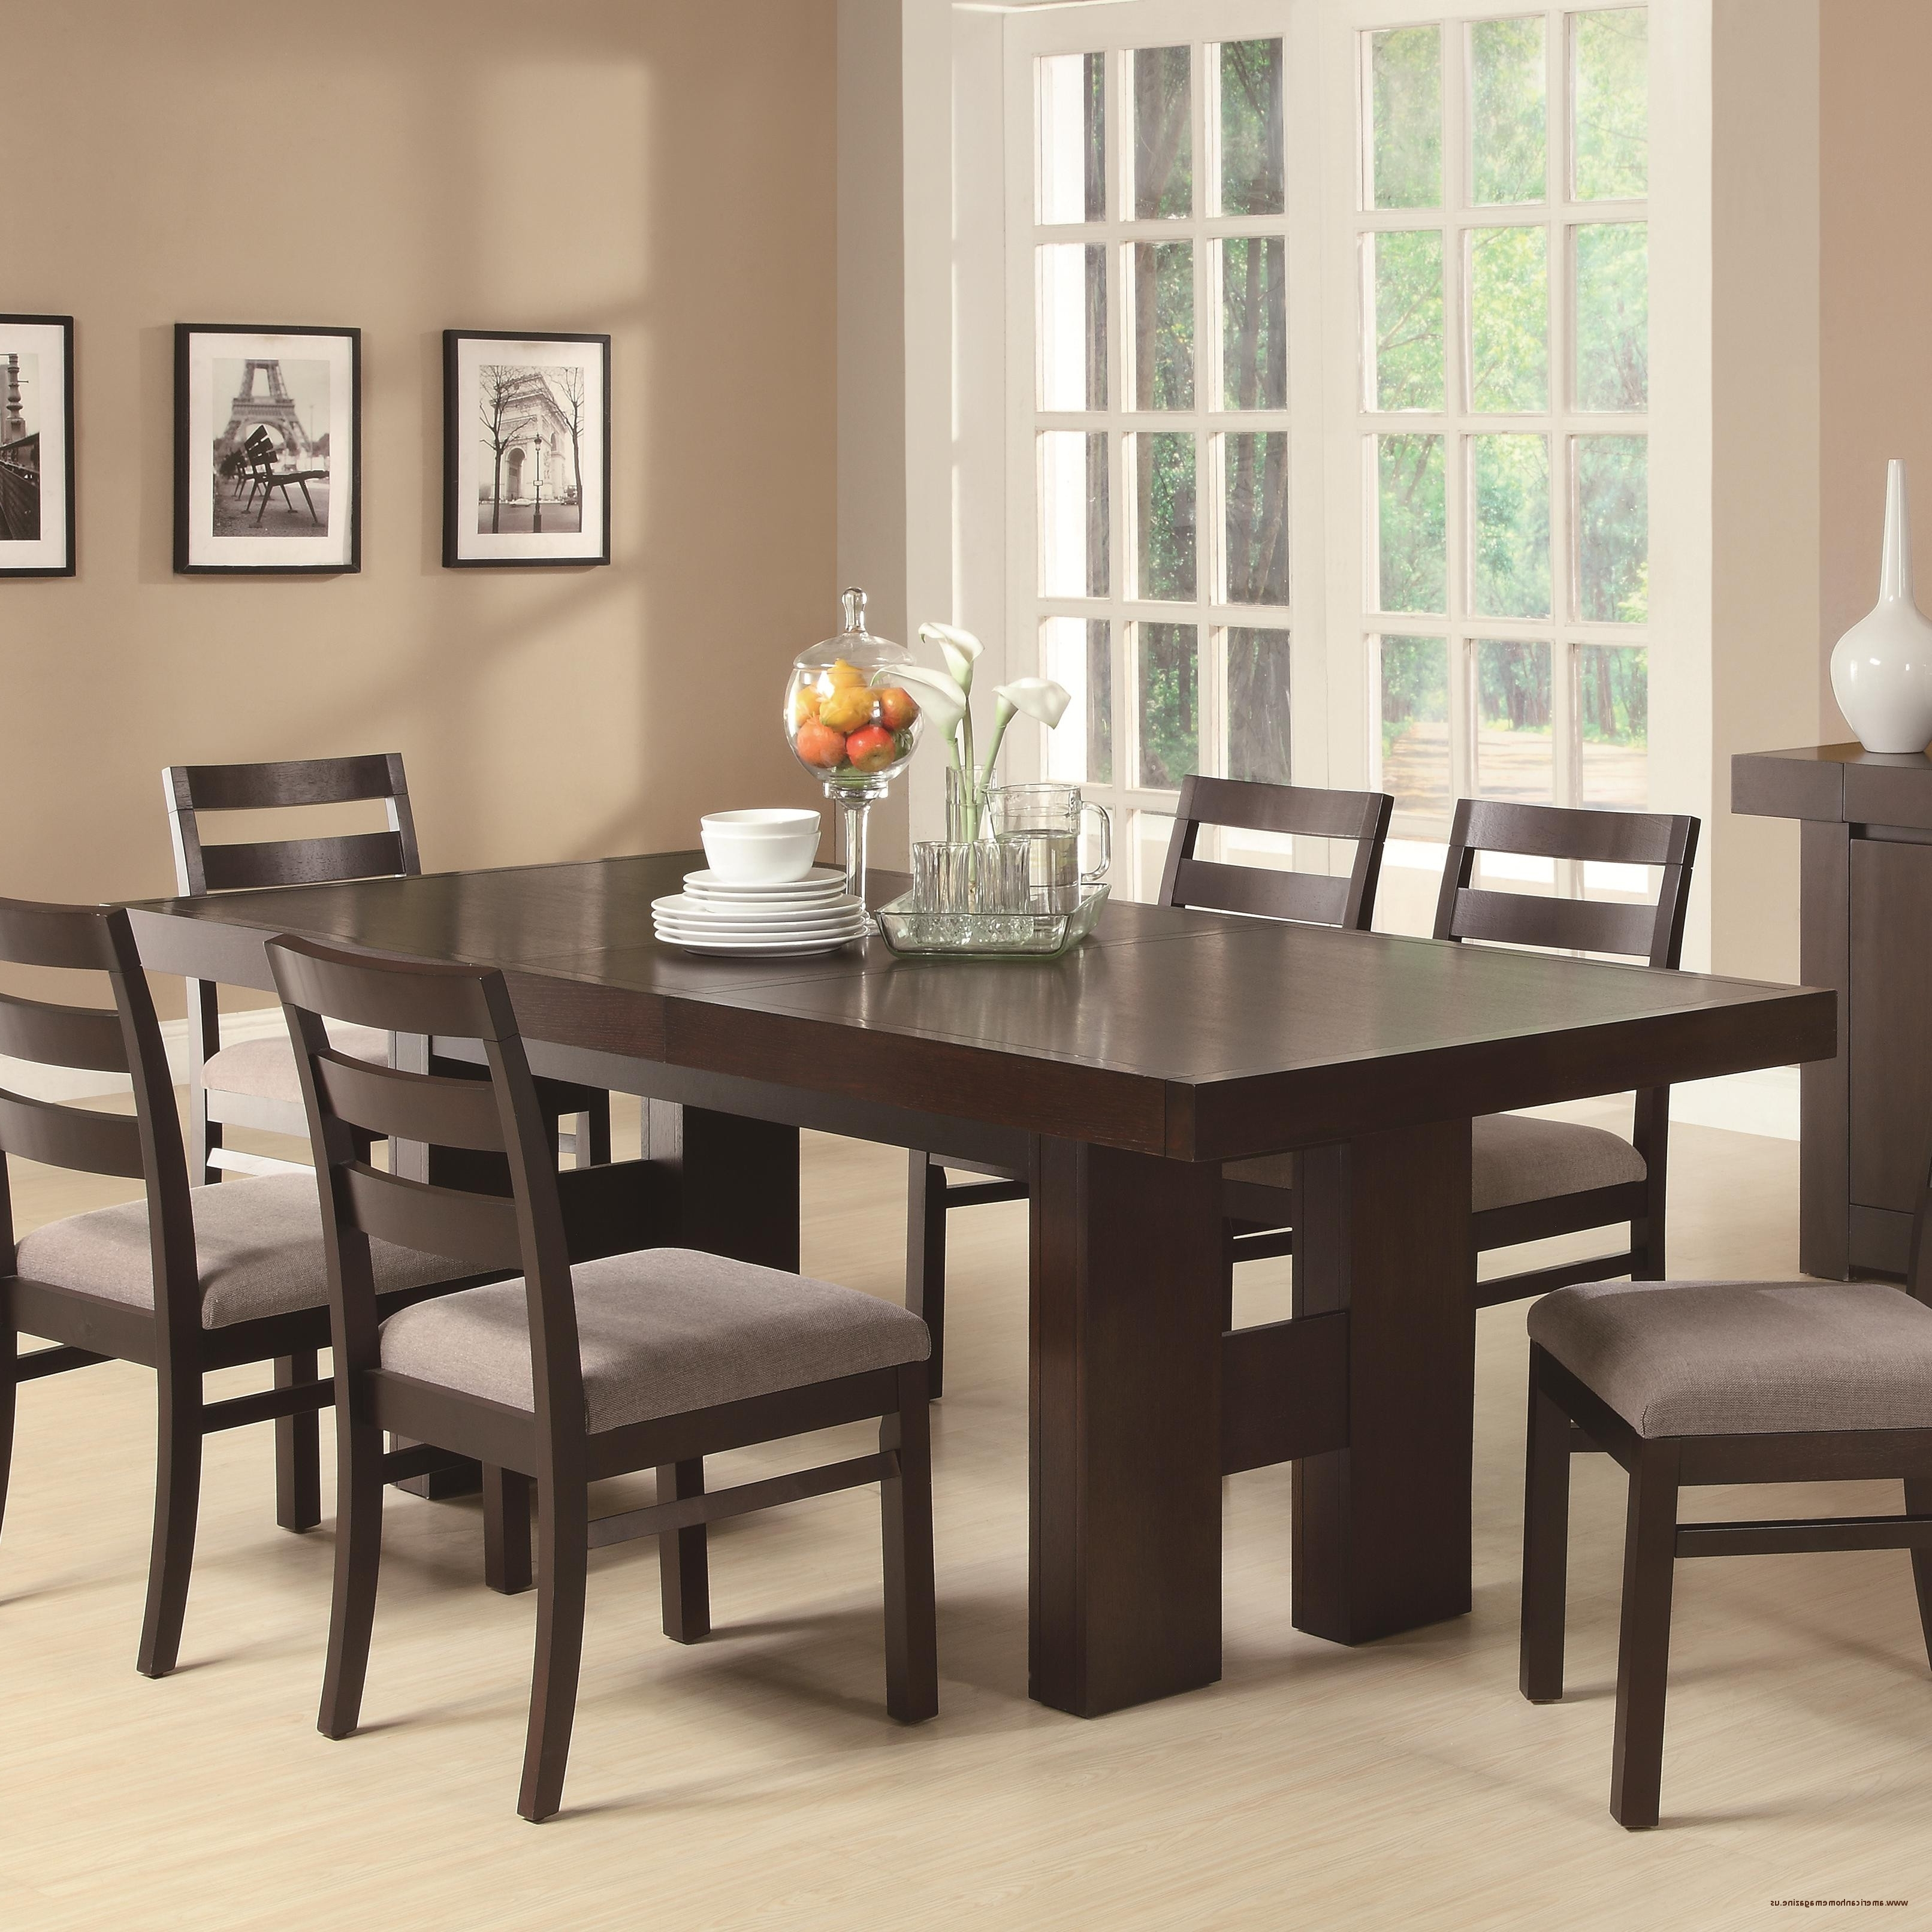 Ebay Dining Suites In 2018 Beautiful Used Dining Room Sets Ebay And 4 Dining Room Chairs Ebay (Gallery 13 of 25)